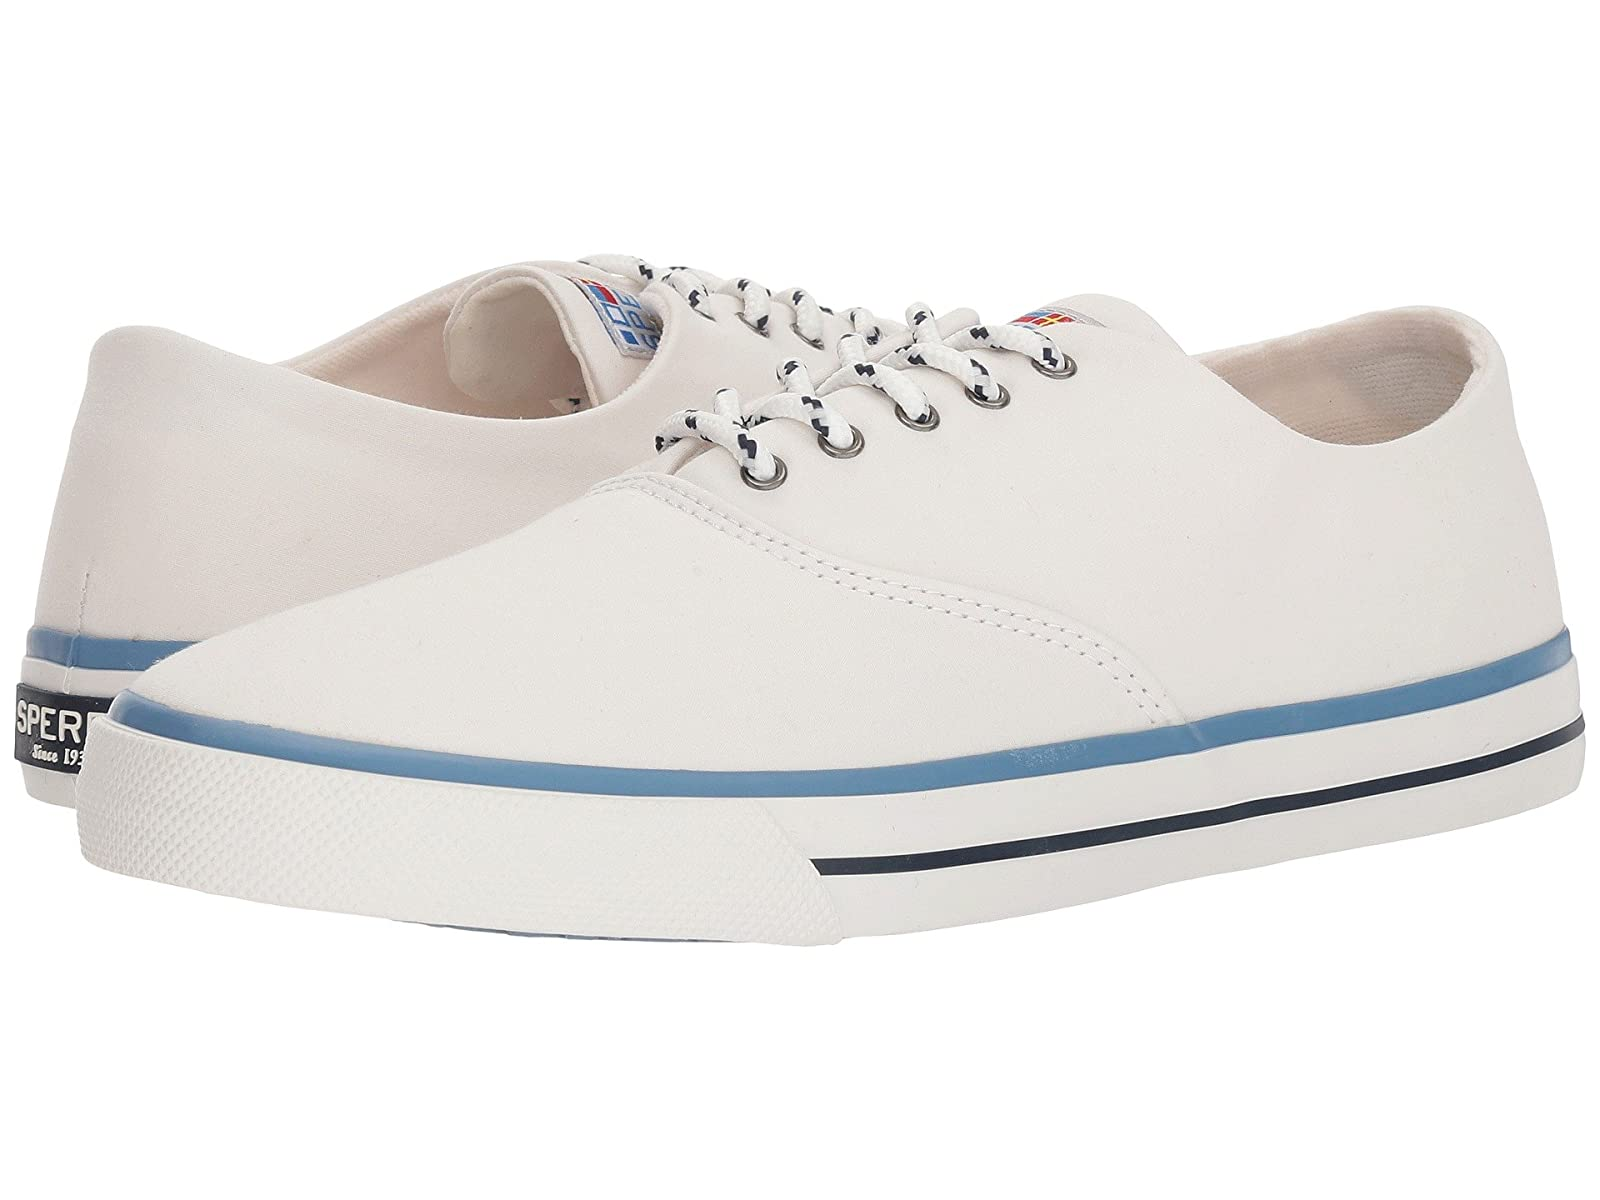 Sperry Captain's CVO NauticalAtmospheric grades have affordable shoes